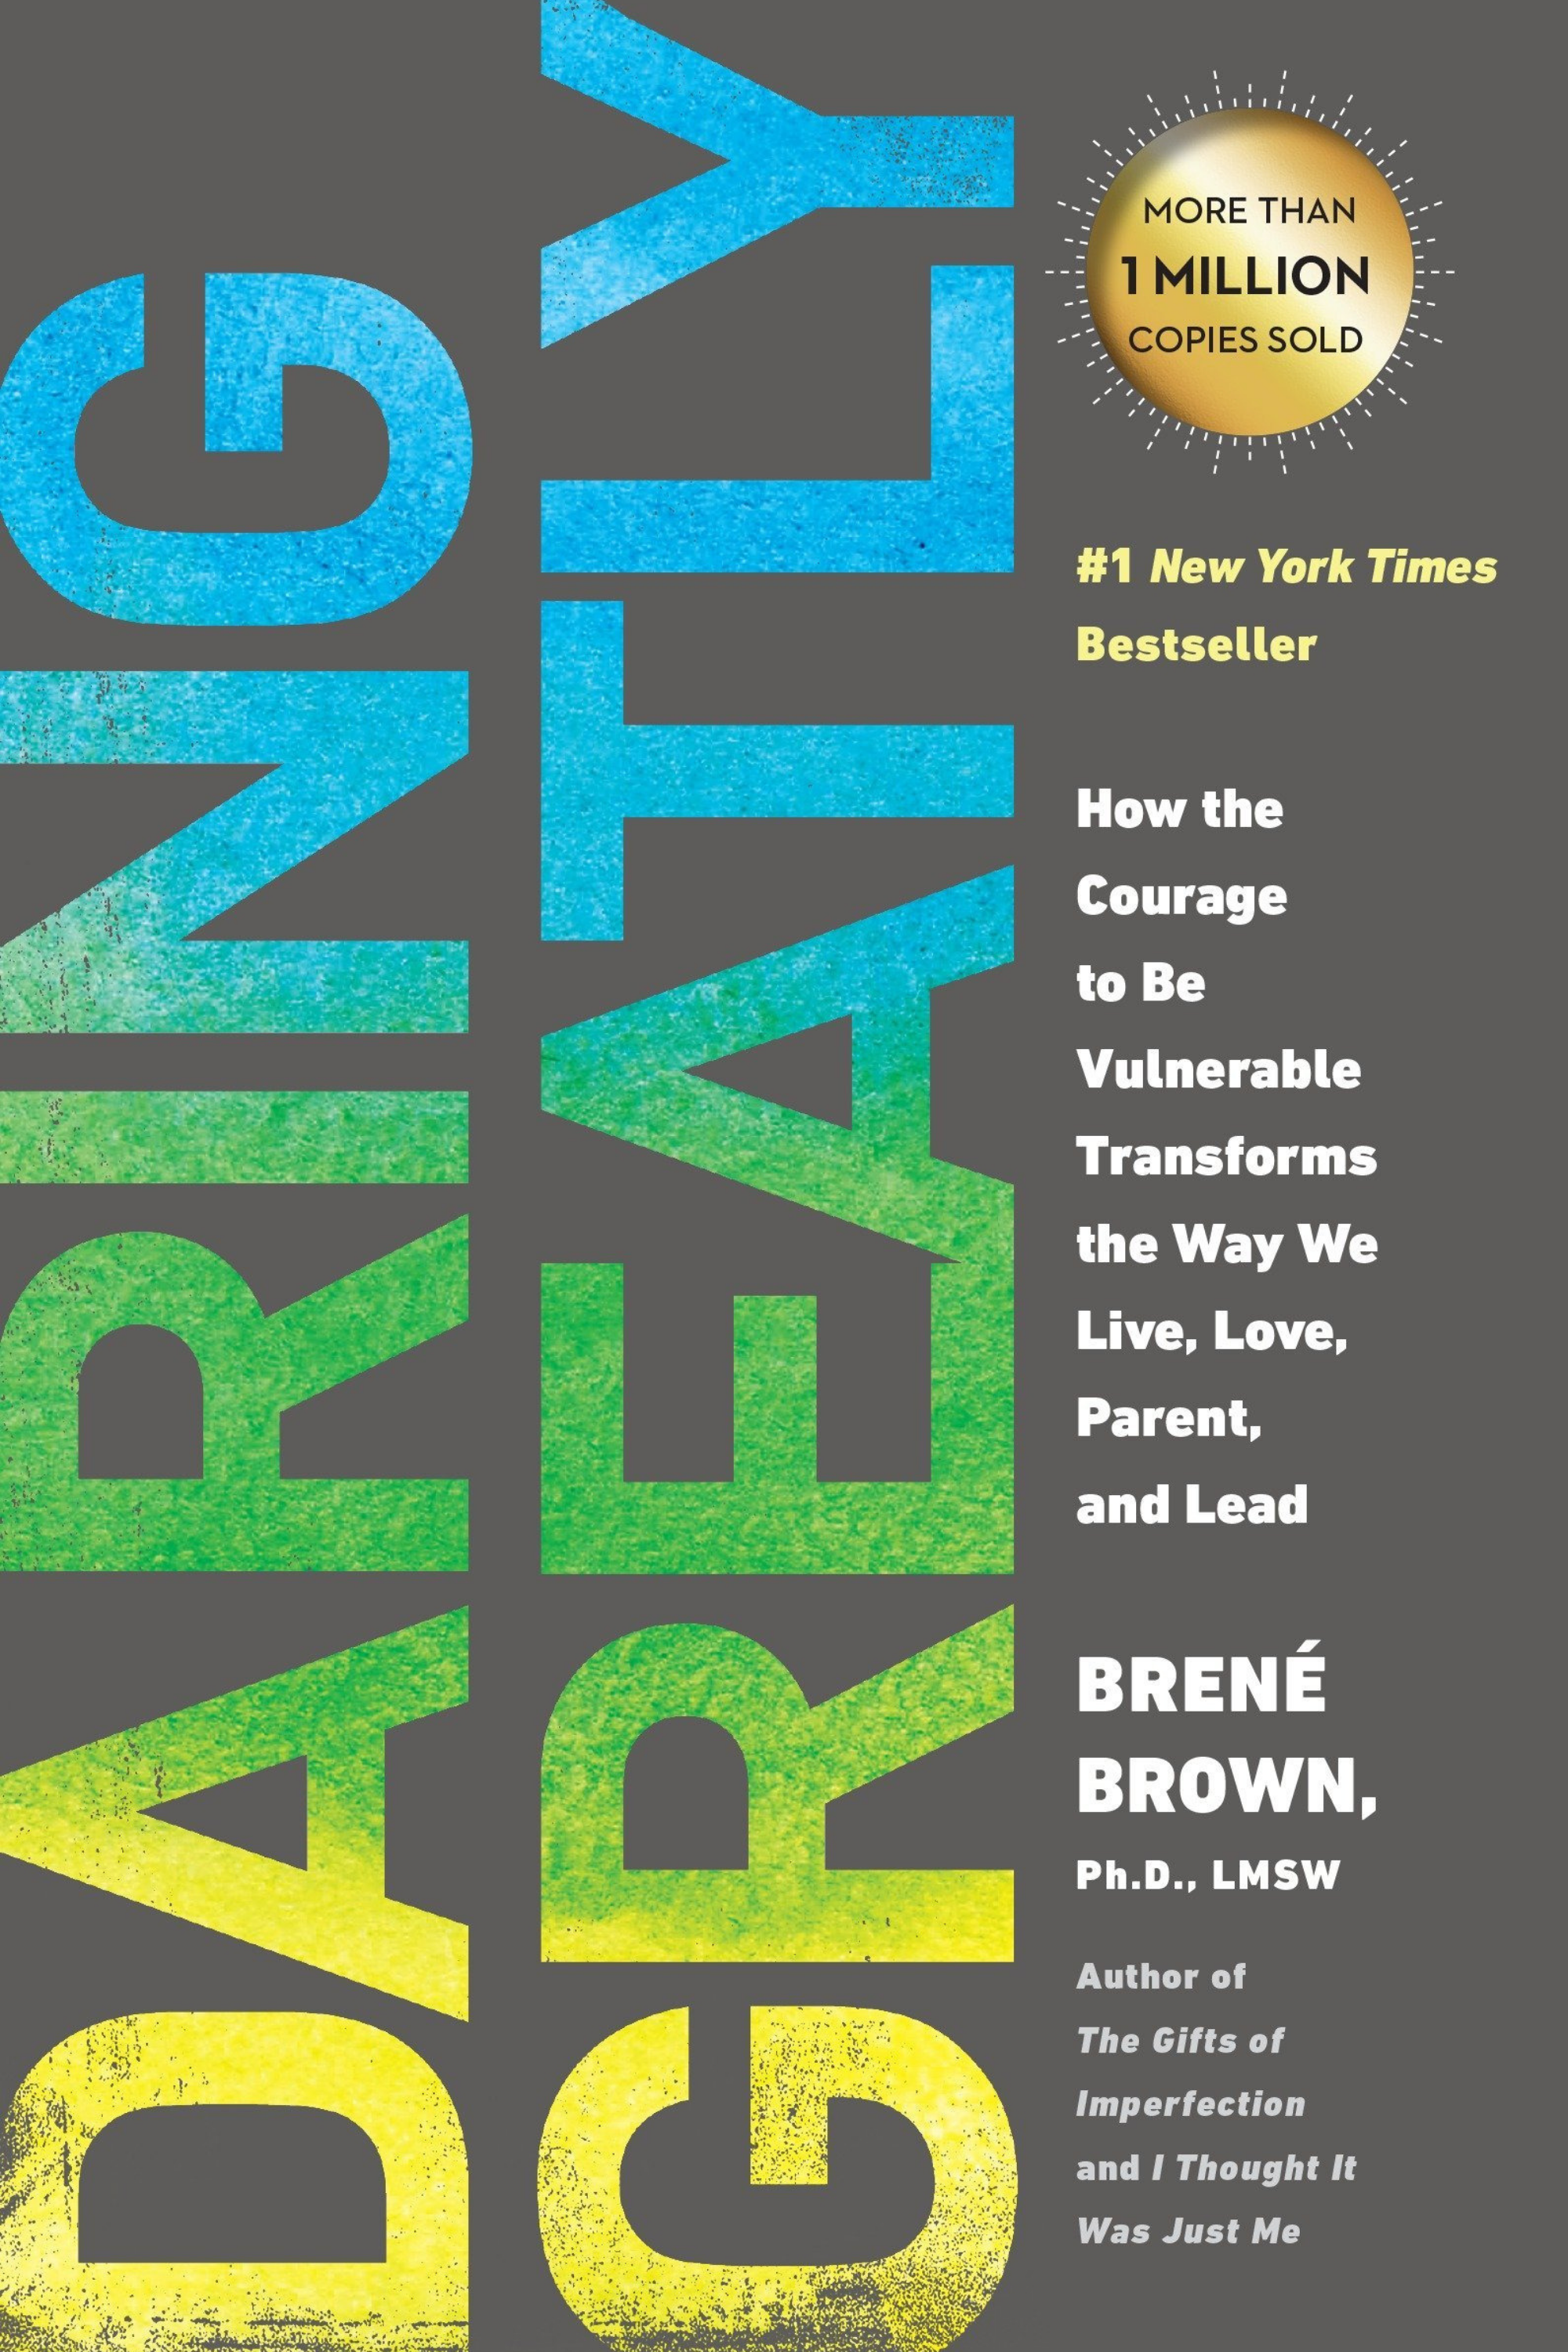 Daring Greatly Brene Brown Courtney Elmer.png